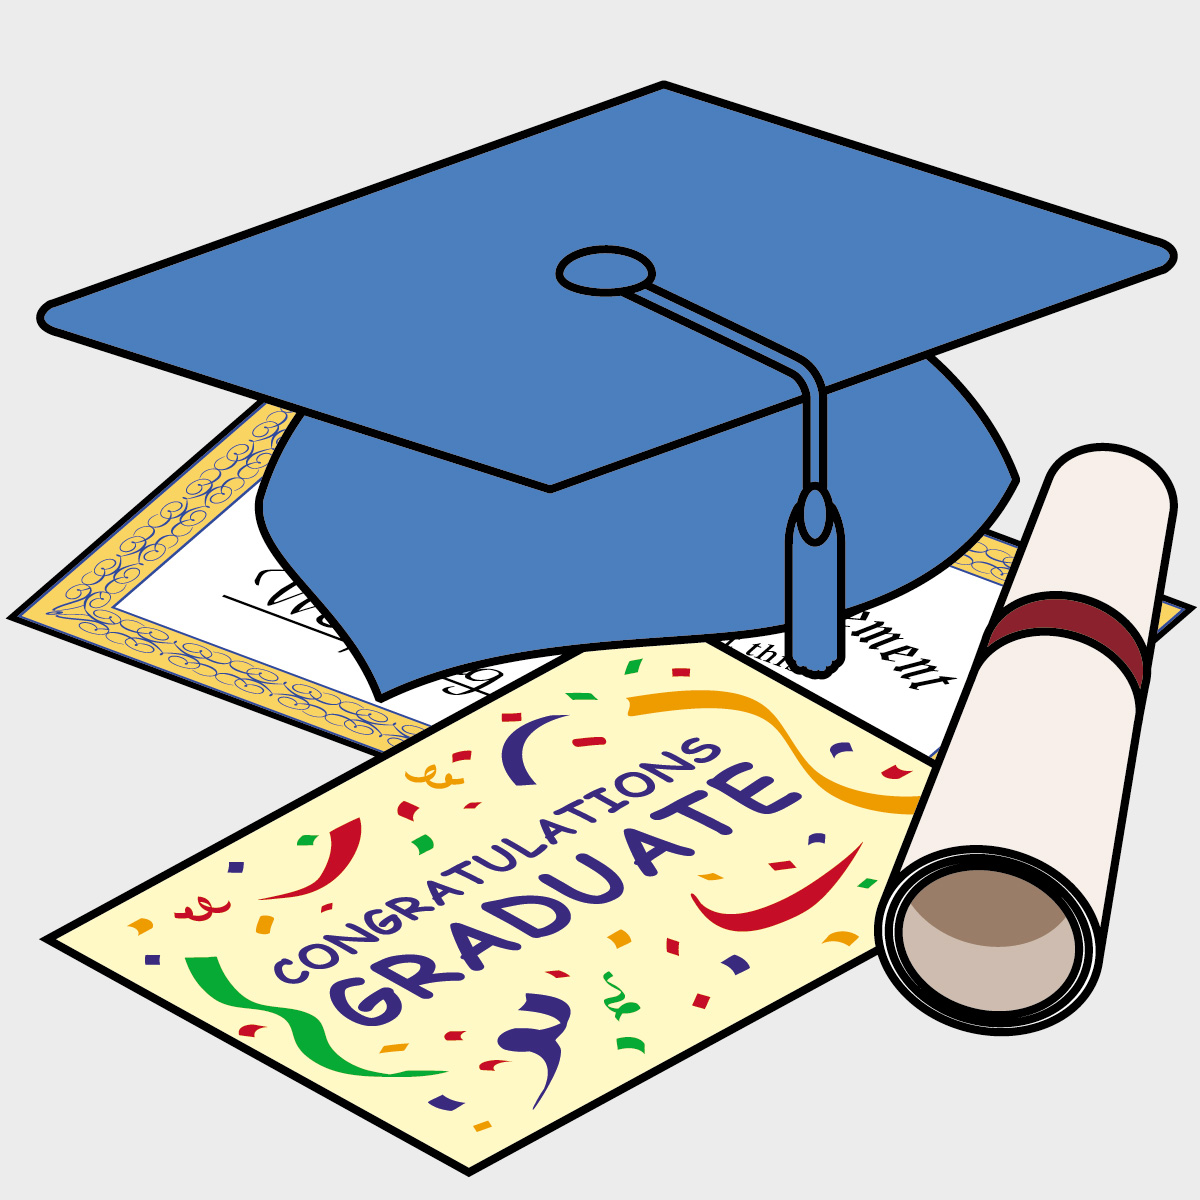 26 High School Graduation Cli - High School Graduation Clip Art